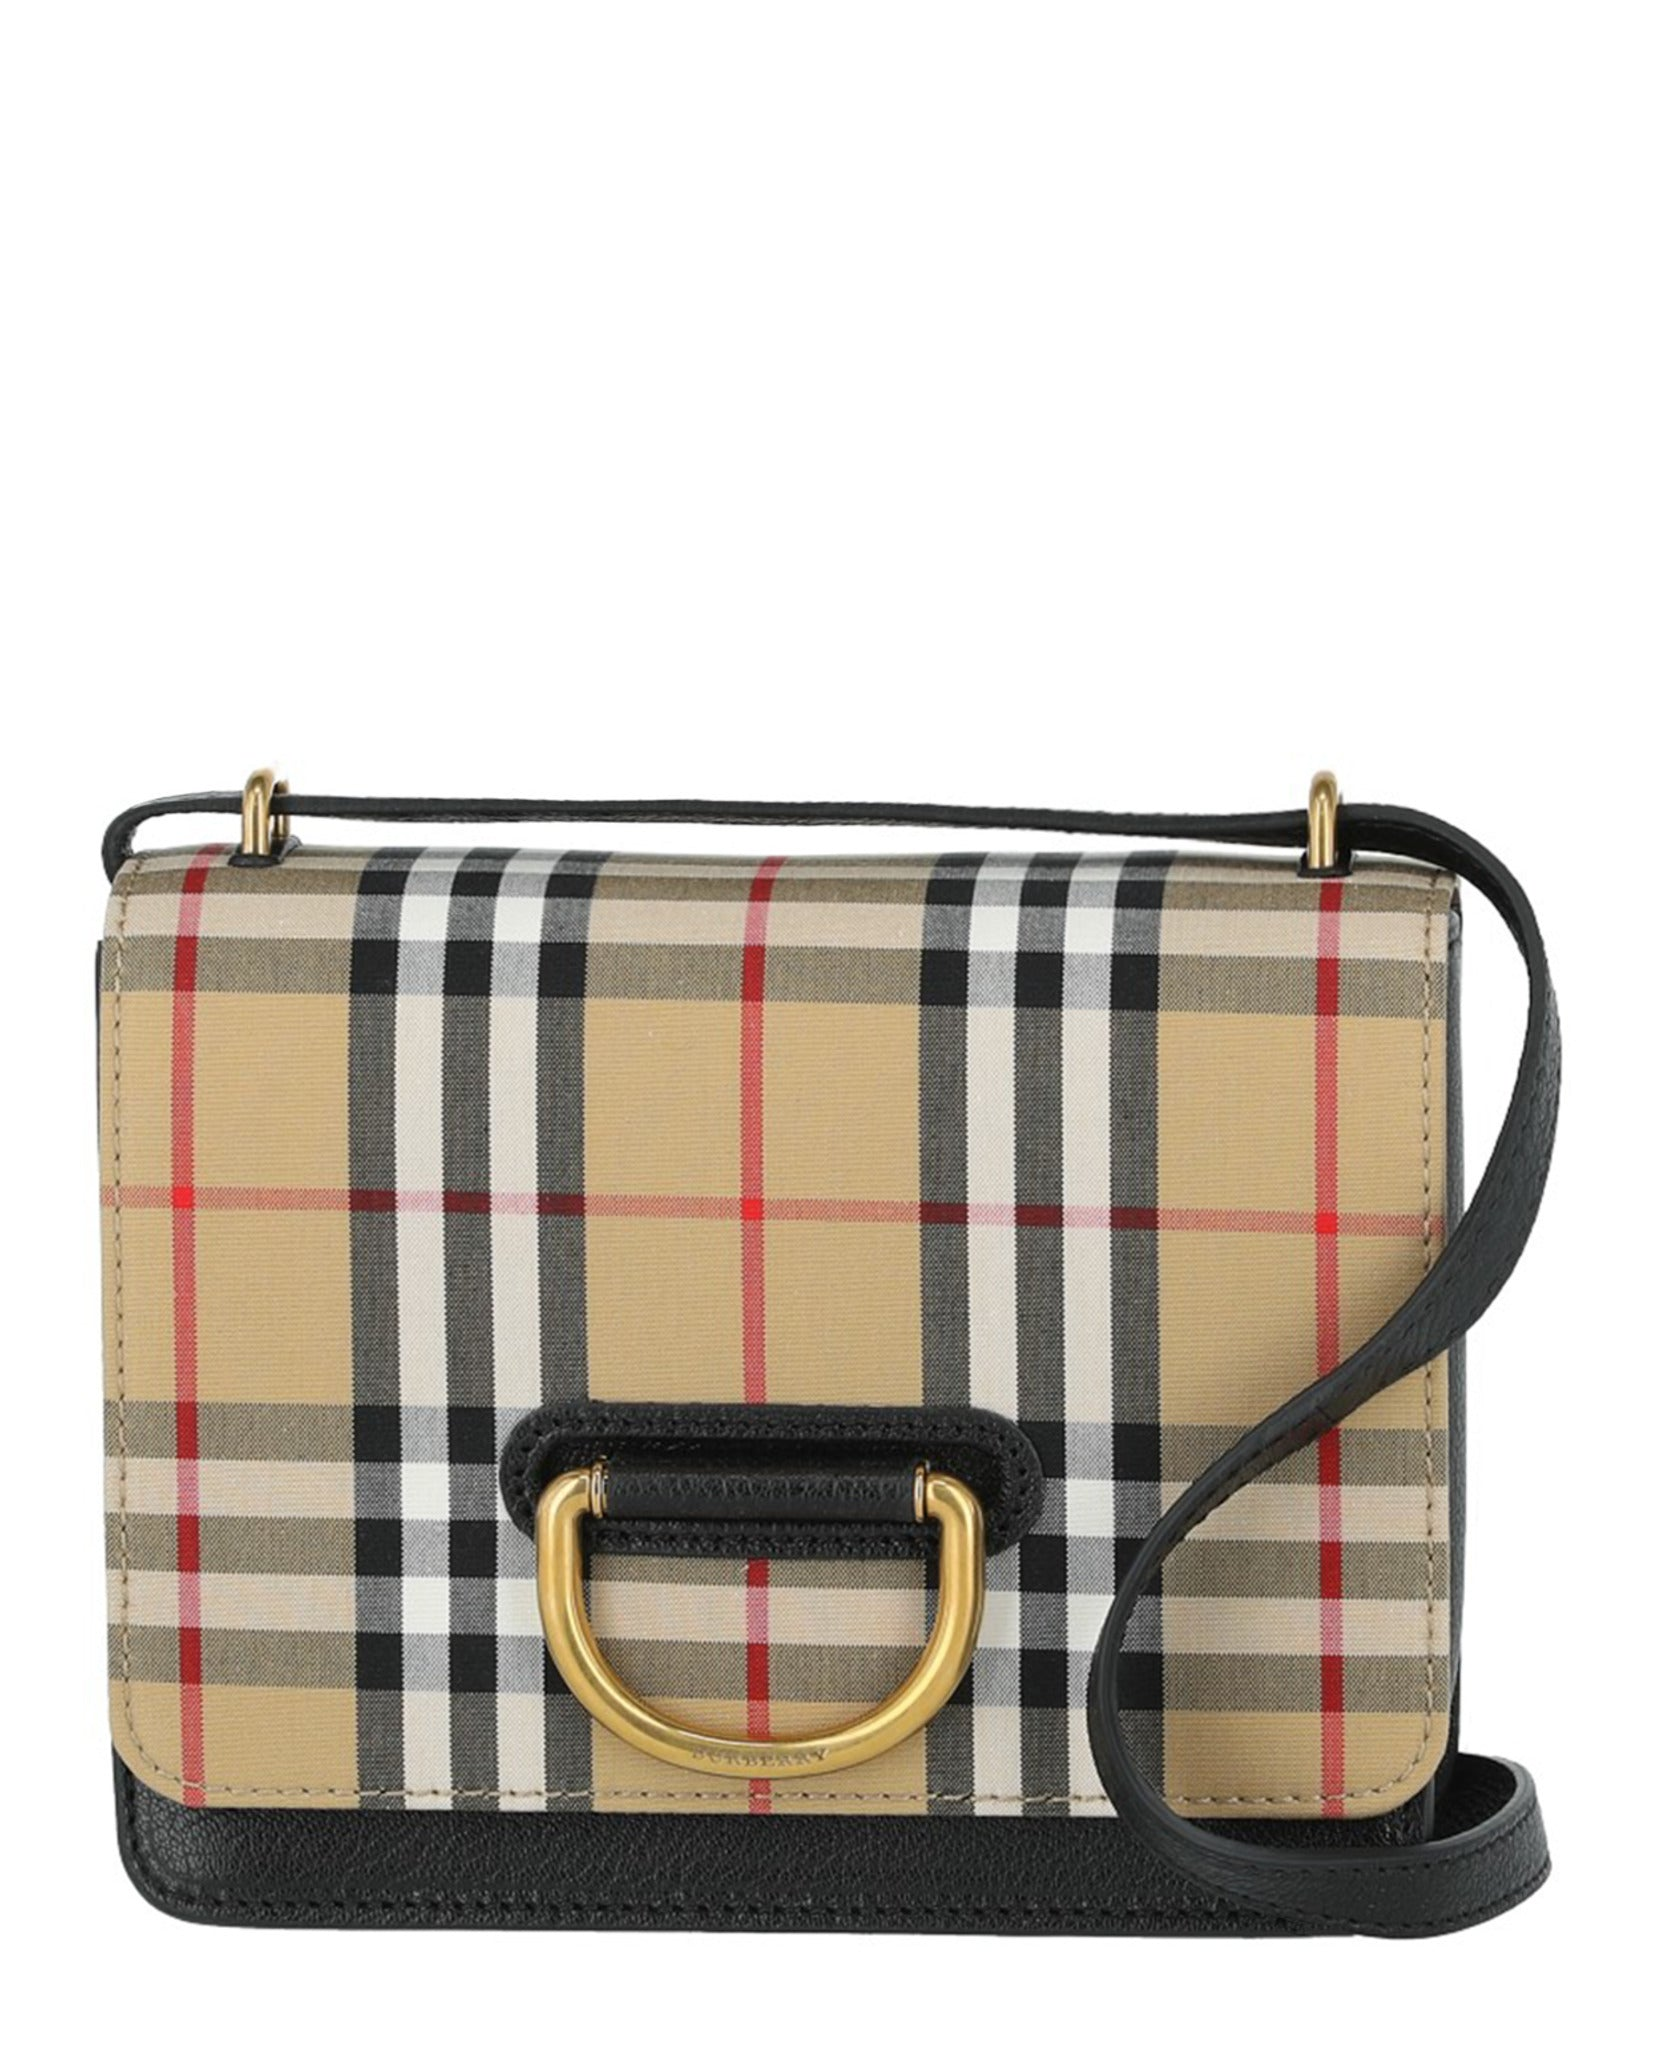 Burberry D-ring Handbags